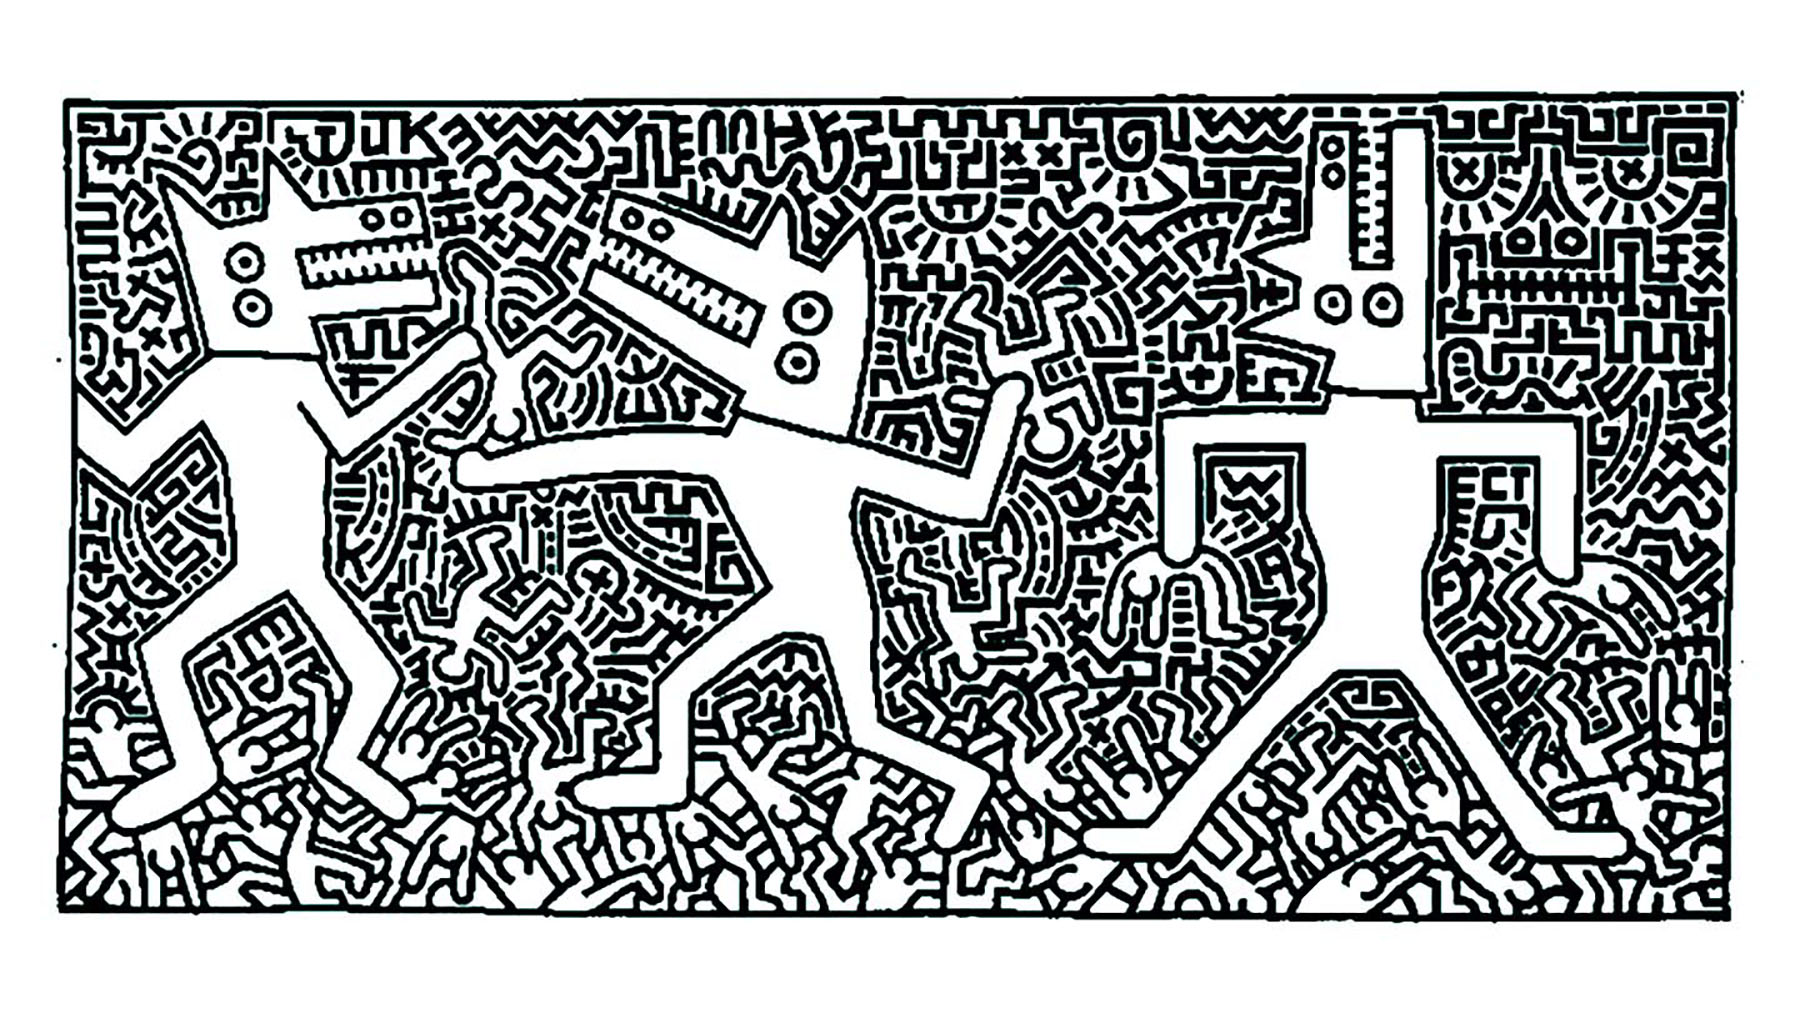 Keith Haring coloring page to print and color